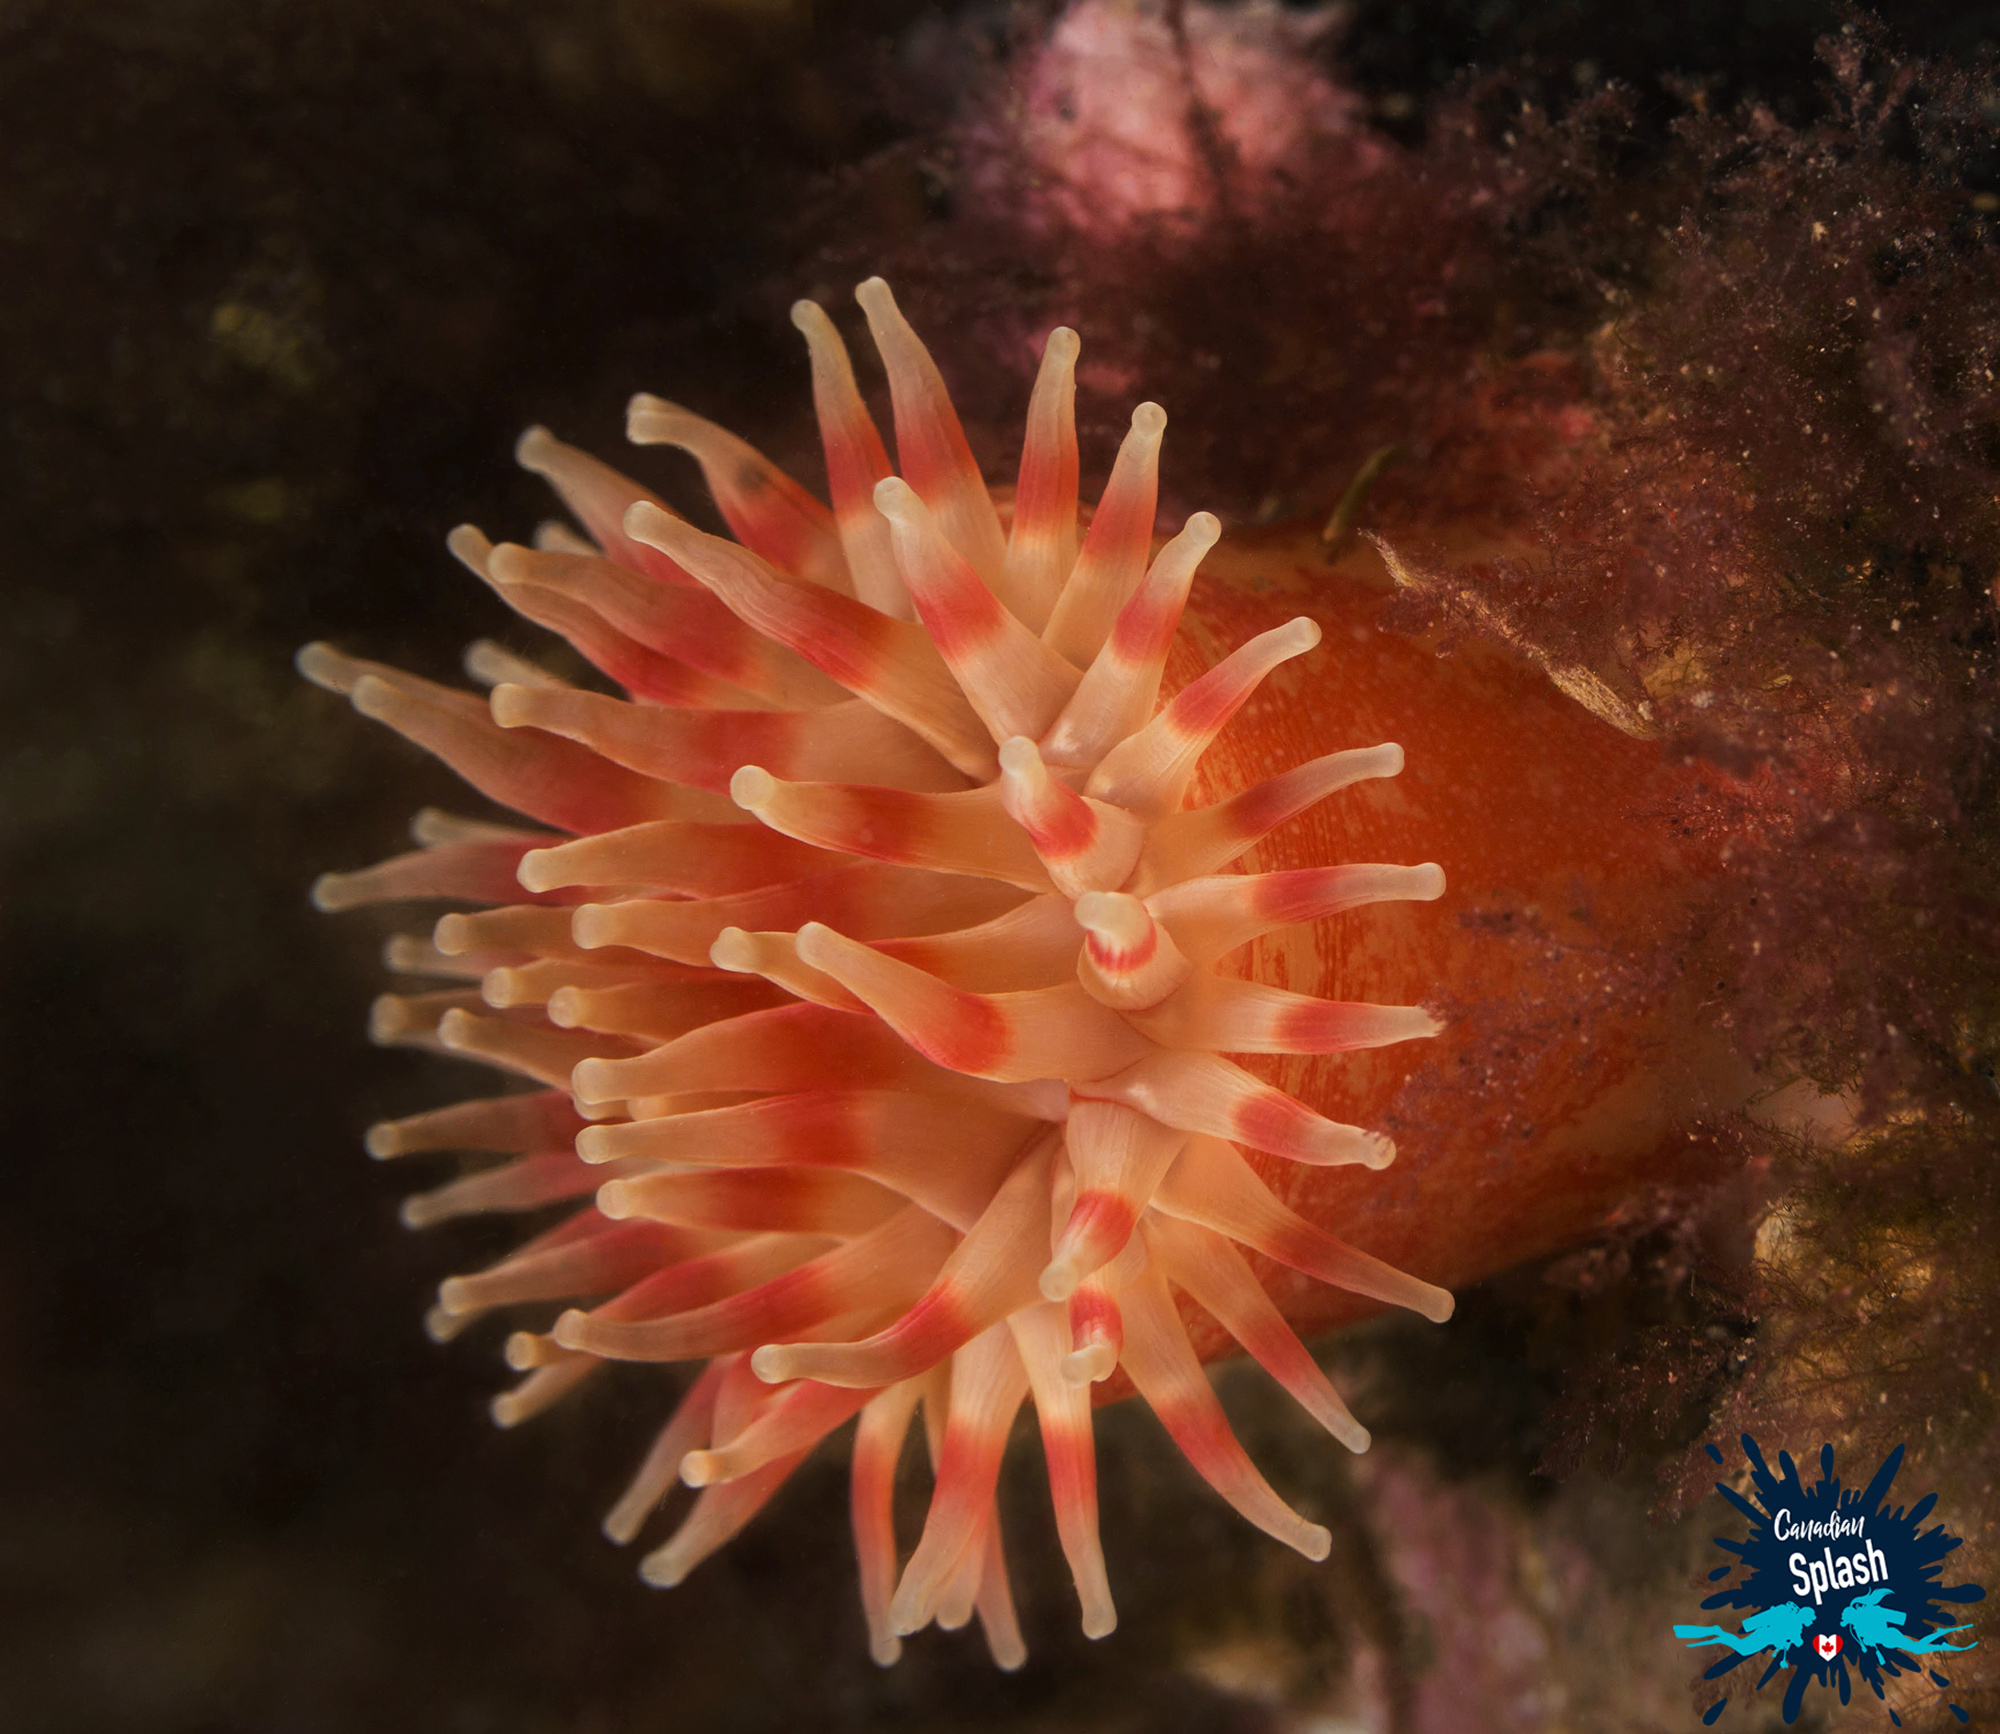 Northern Red Sea Anemone On The Wall Scuba Diving At Deer Island, New Brunswick, Canadian Splash